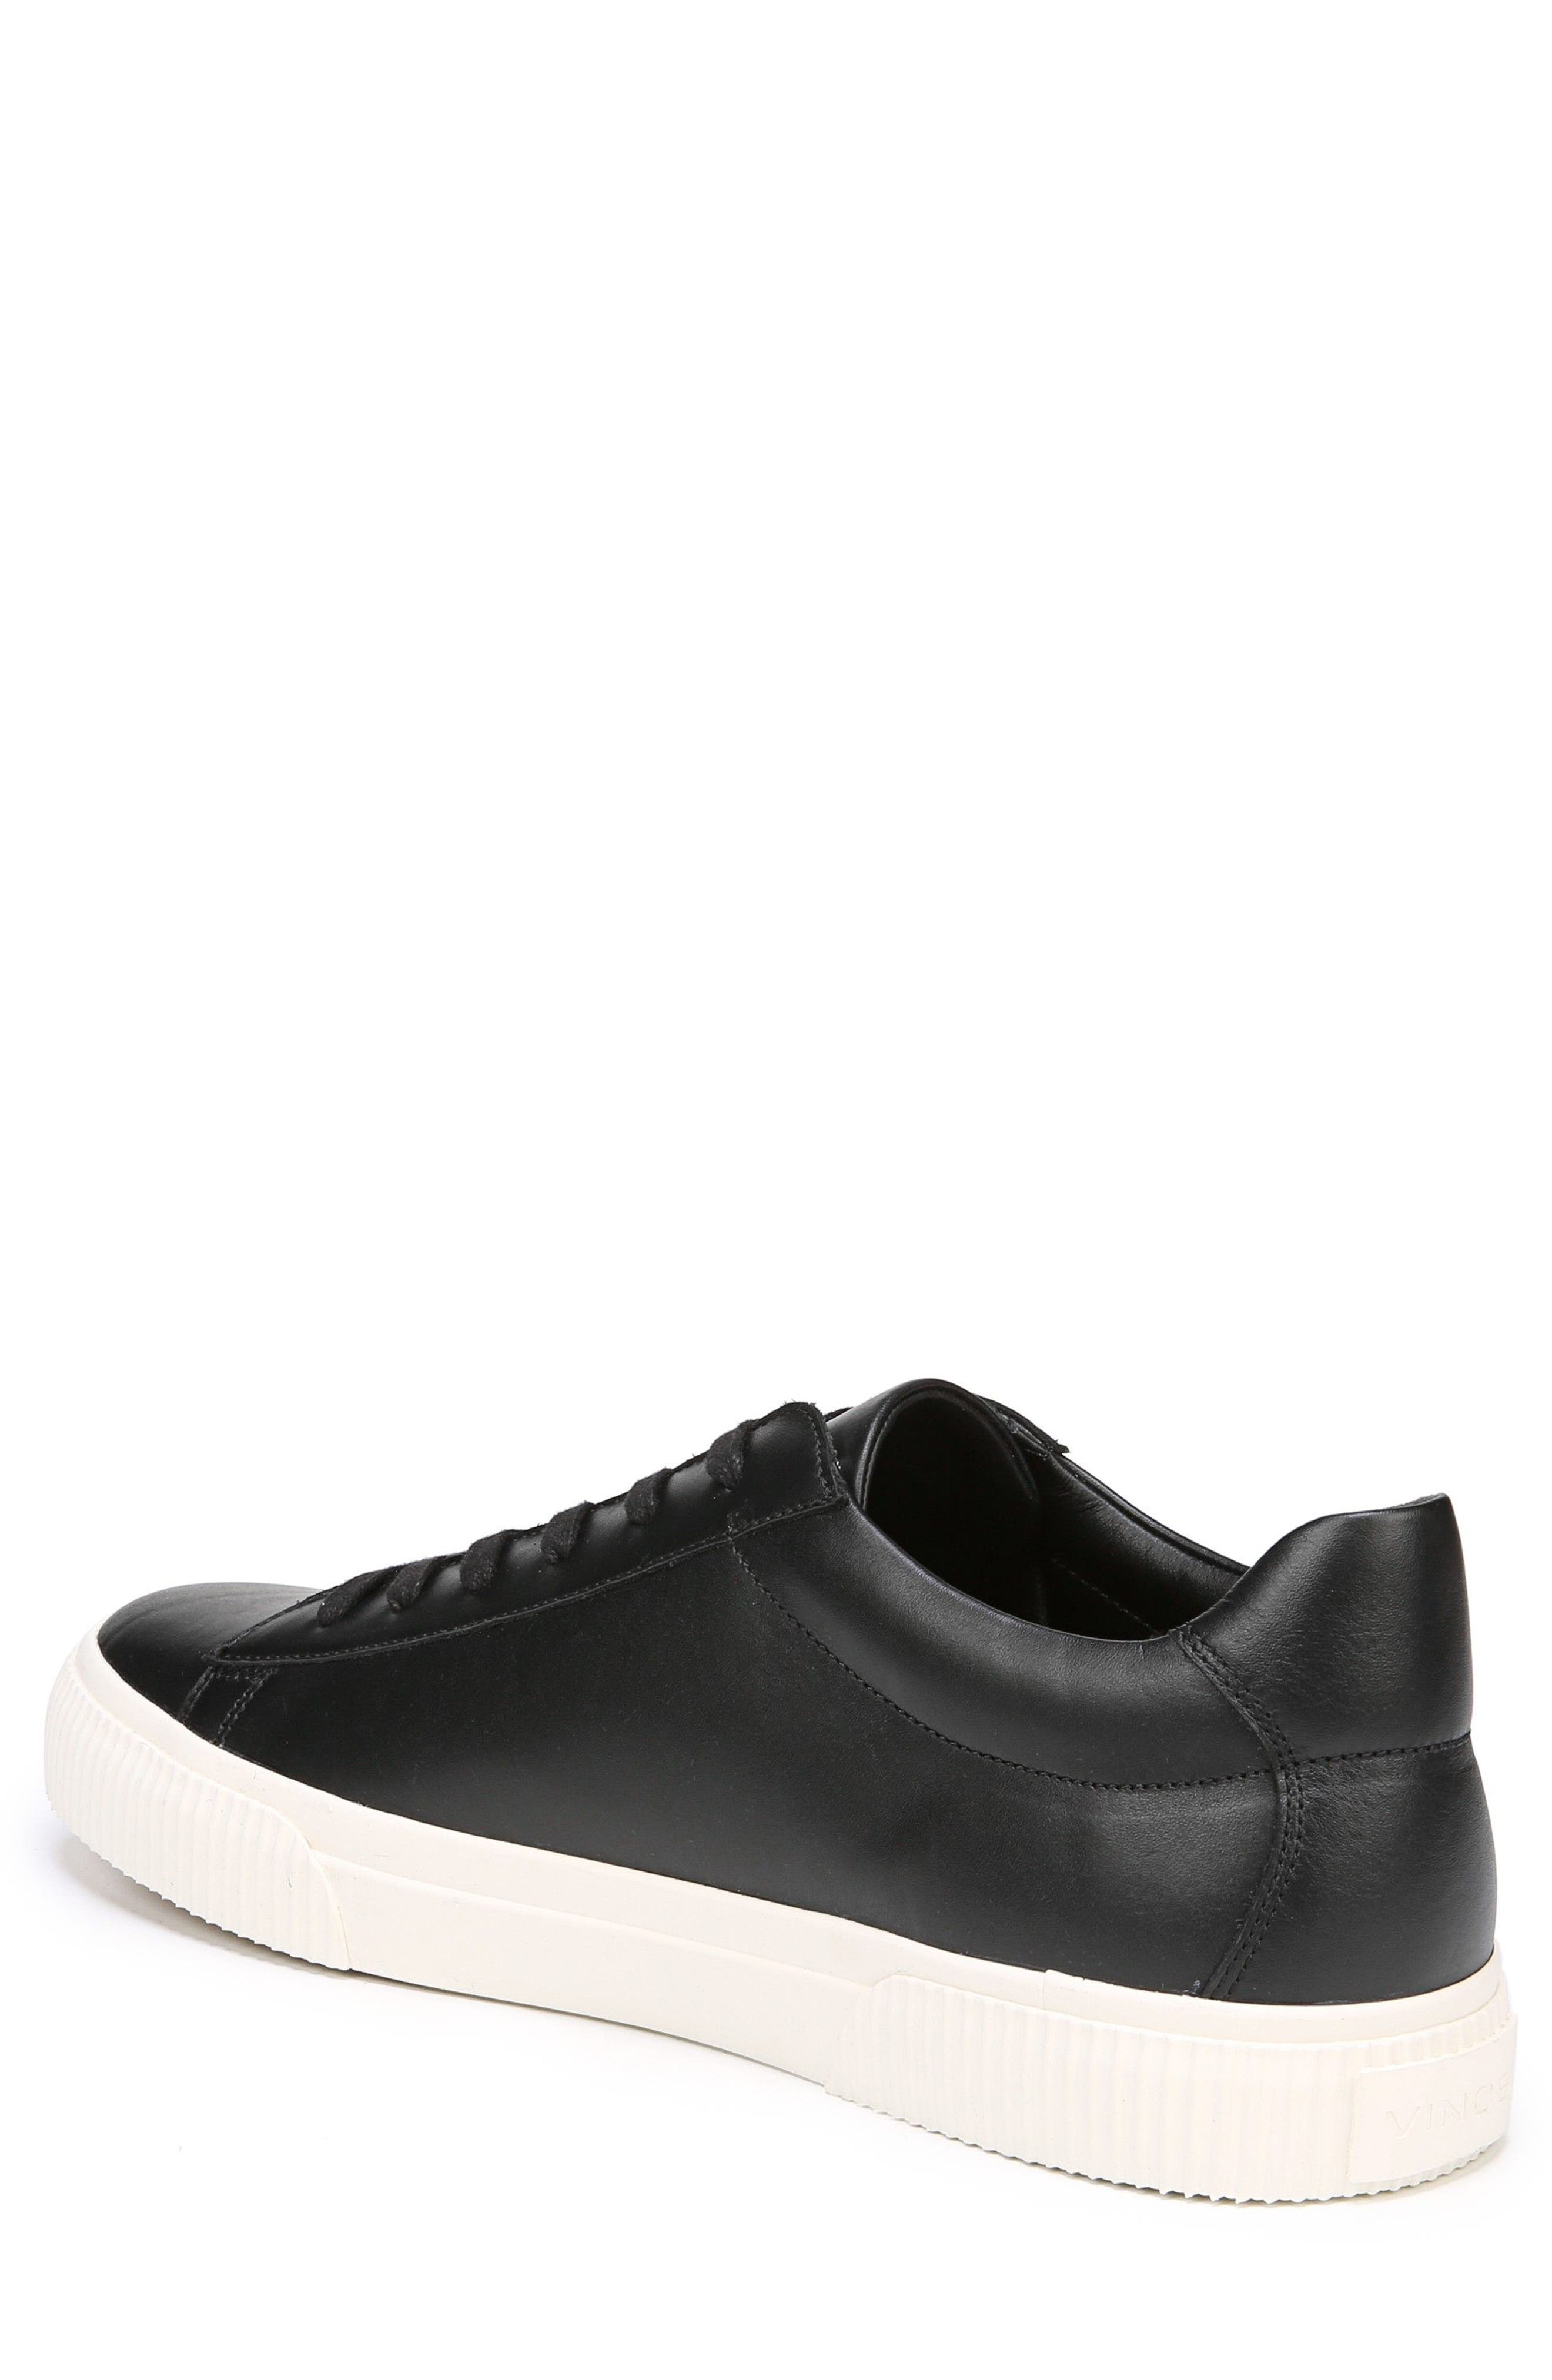 Kurtis Low Top Sneaker,                             Alternate thumbnail 2, color,                             001